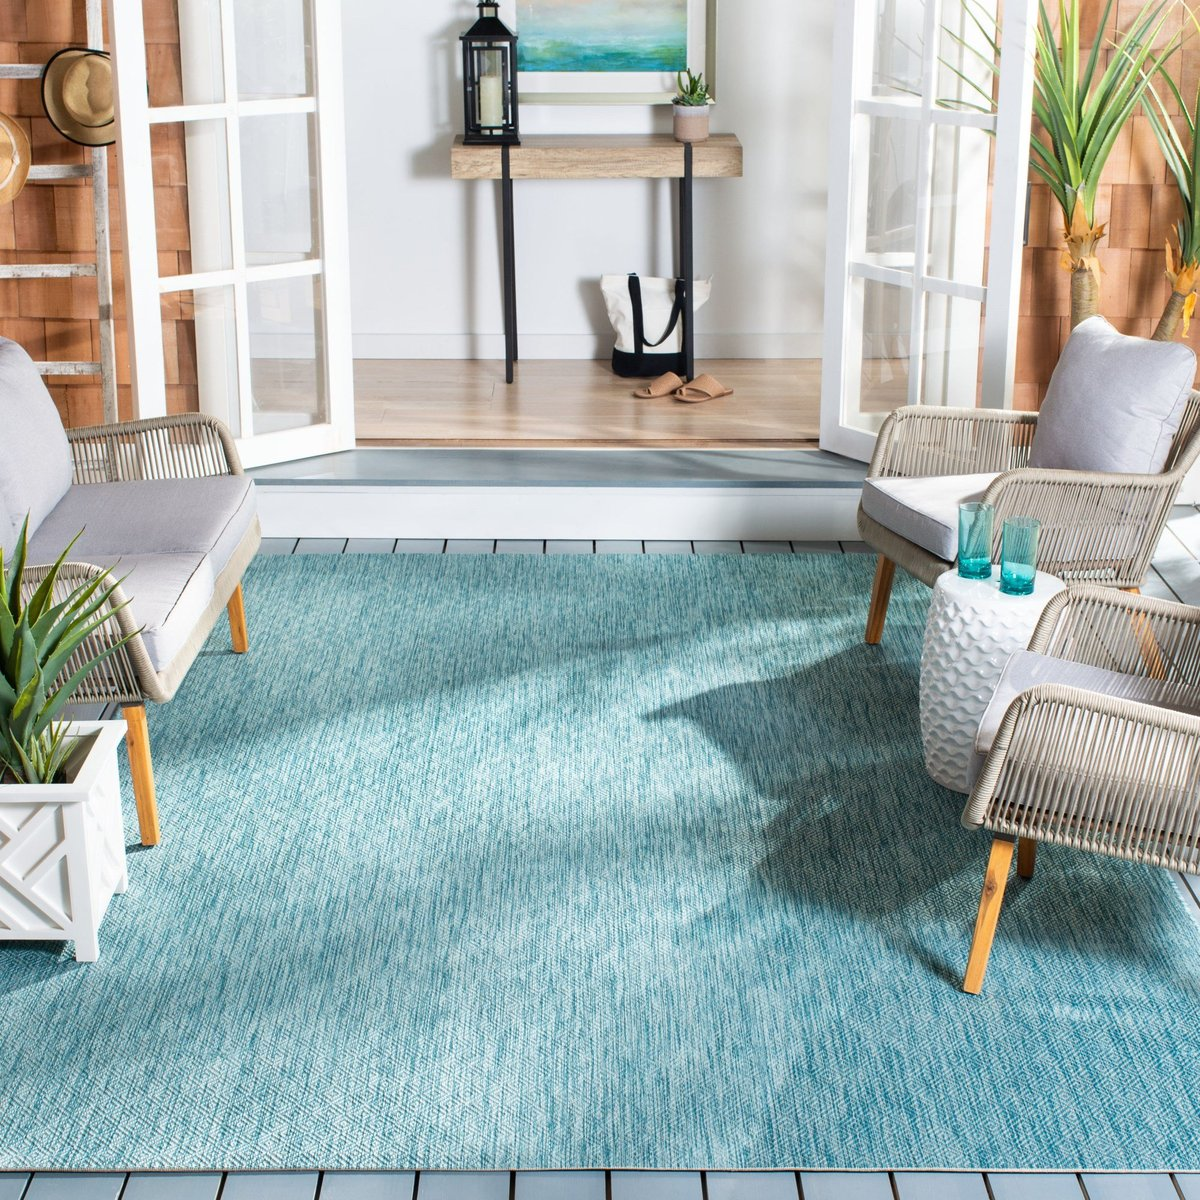 Soothing Blues Outdoor Decor Ideas